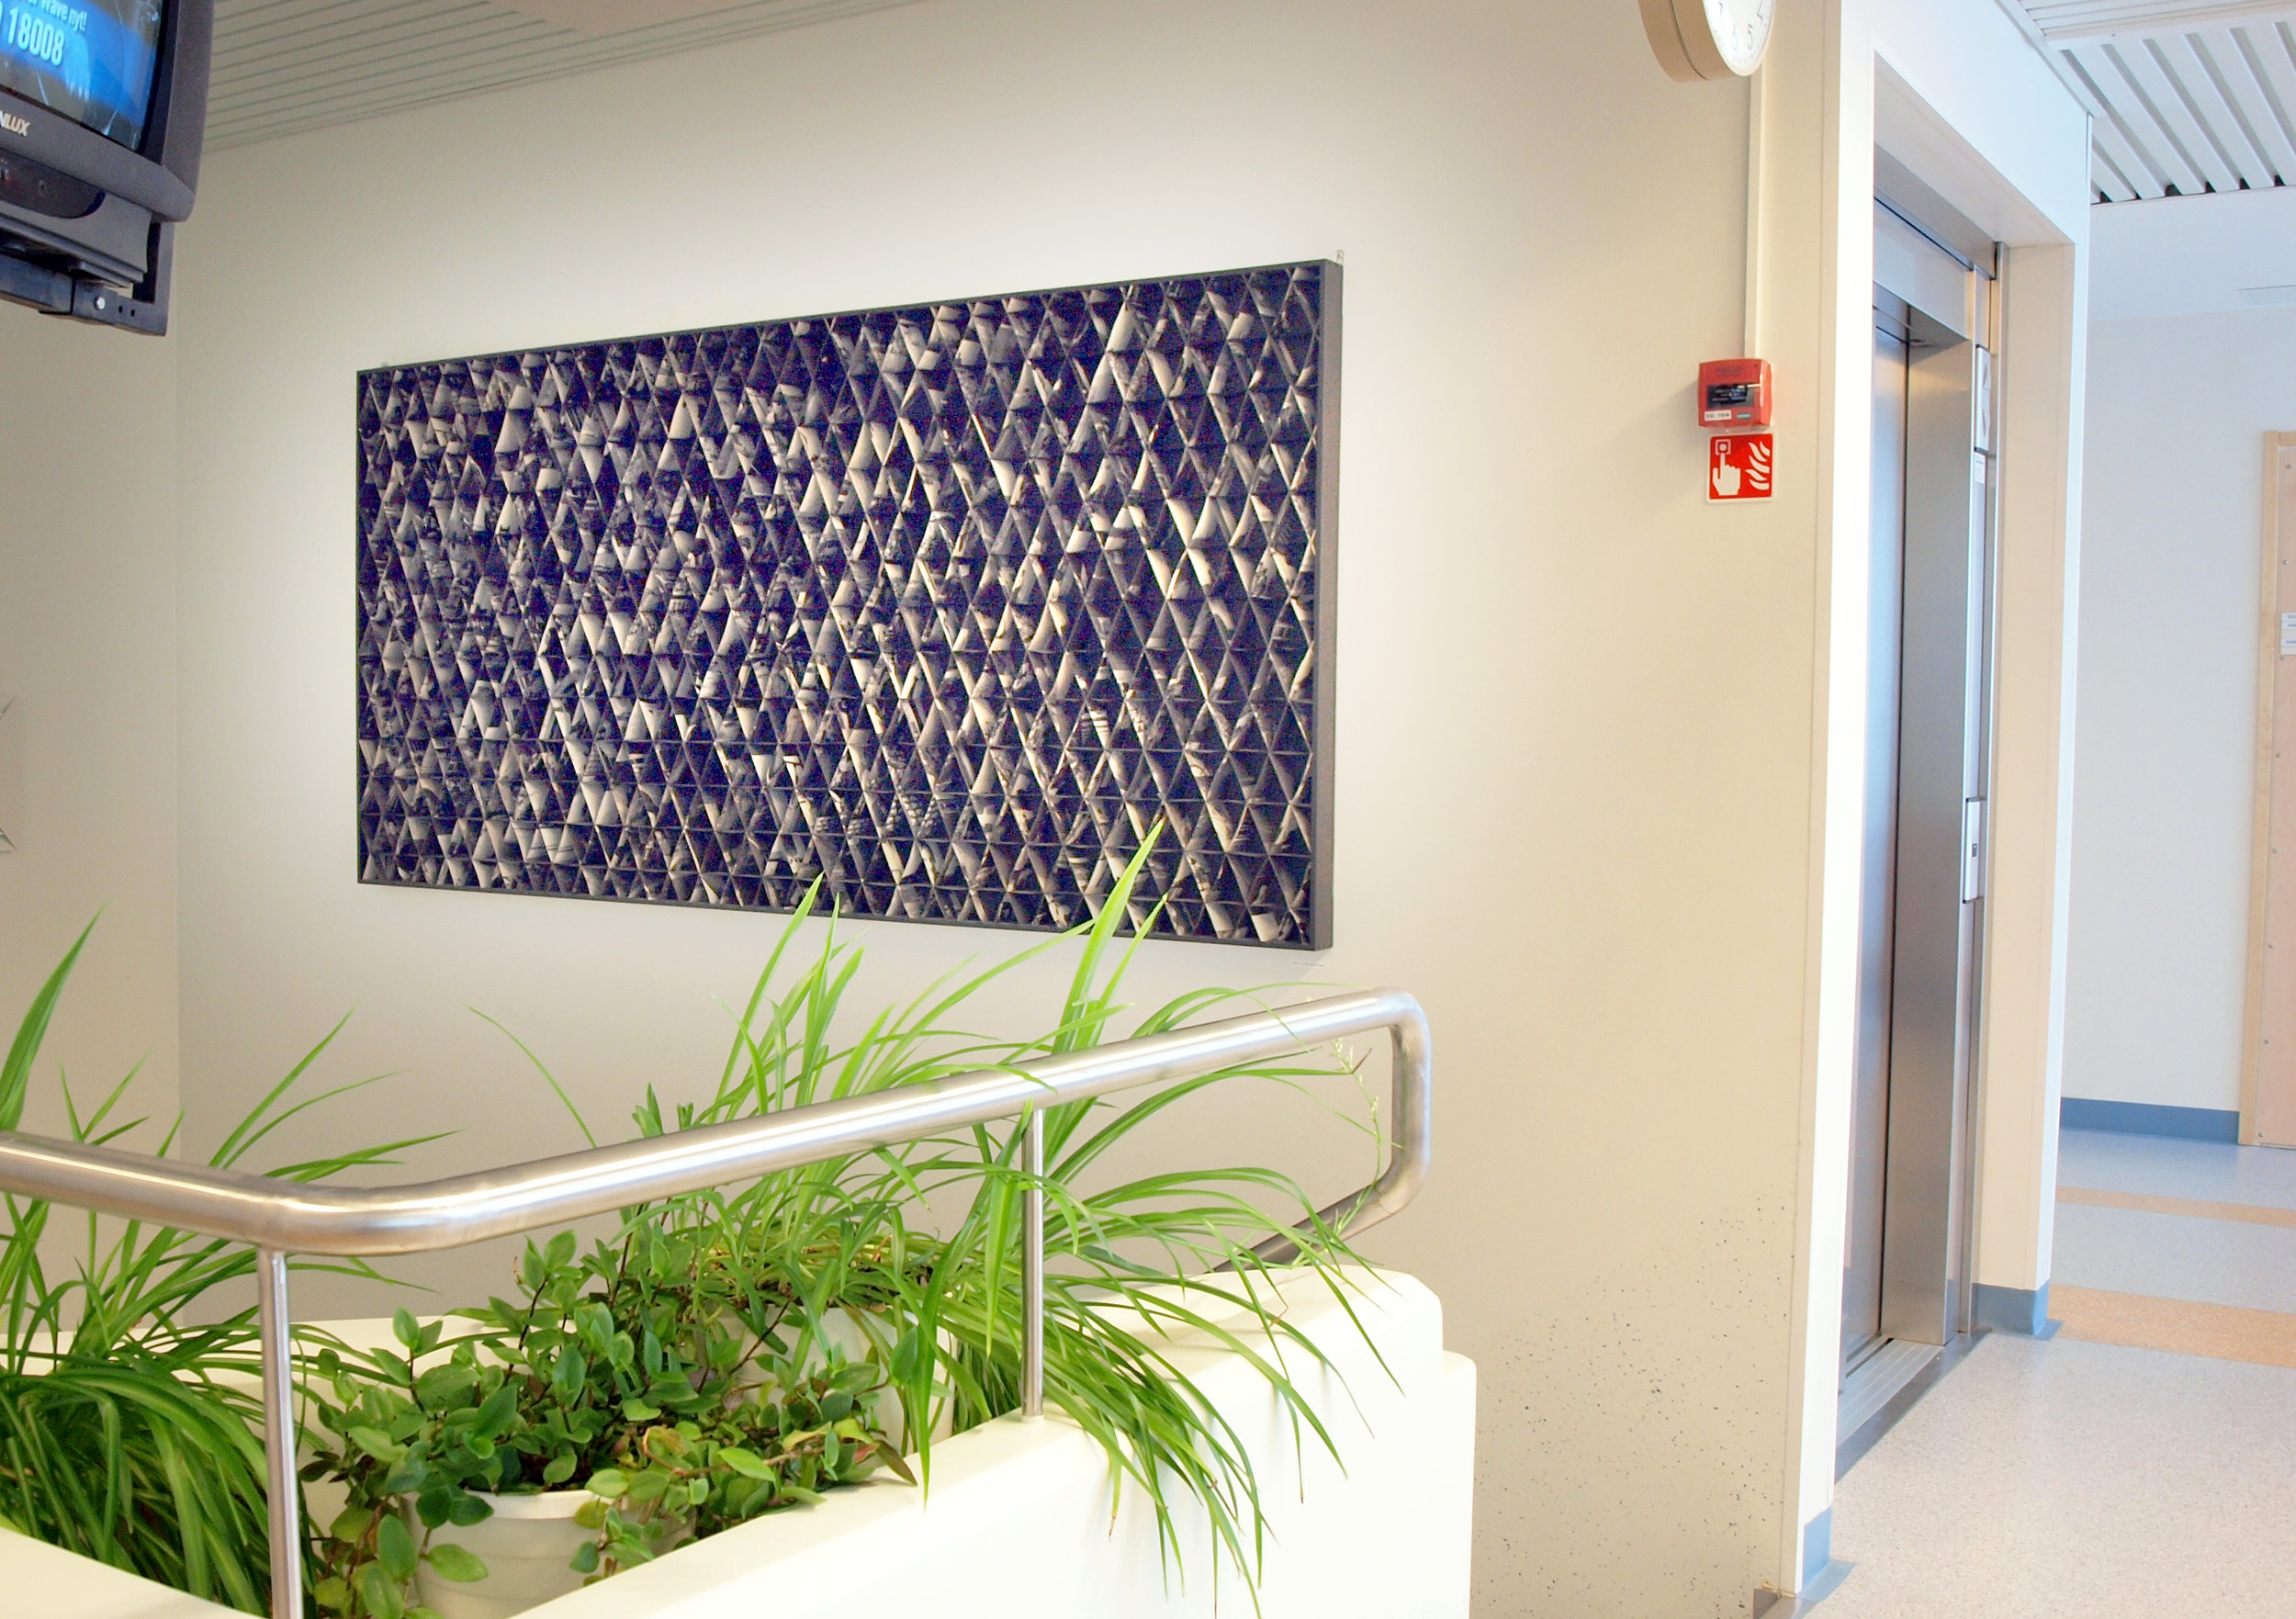 View from the right hands side. Installed at a hospital waiting rooms in Savonlinna.